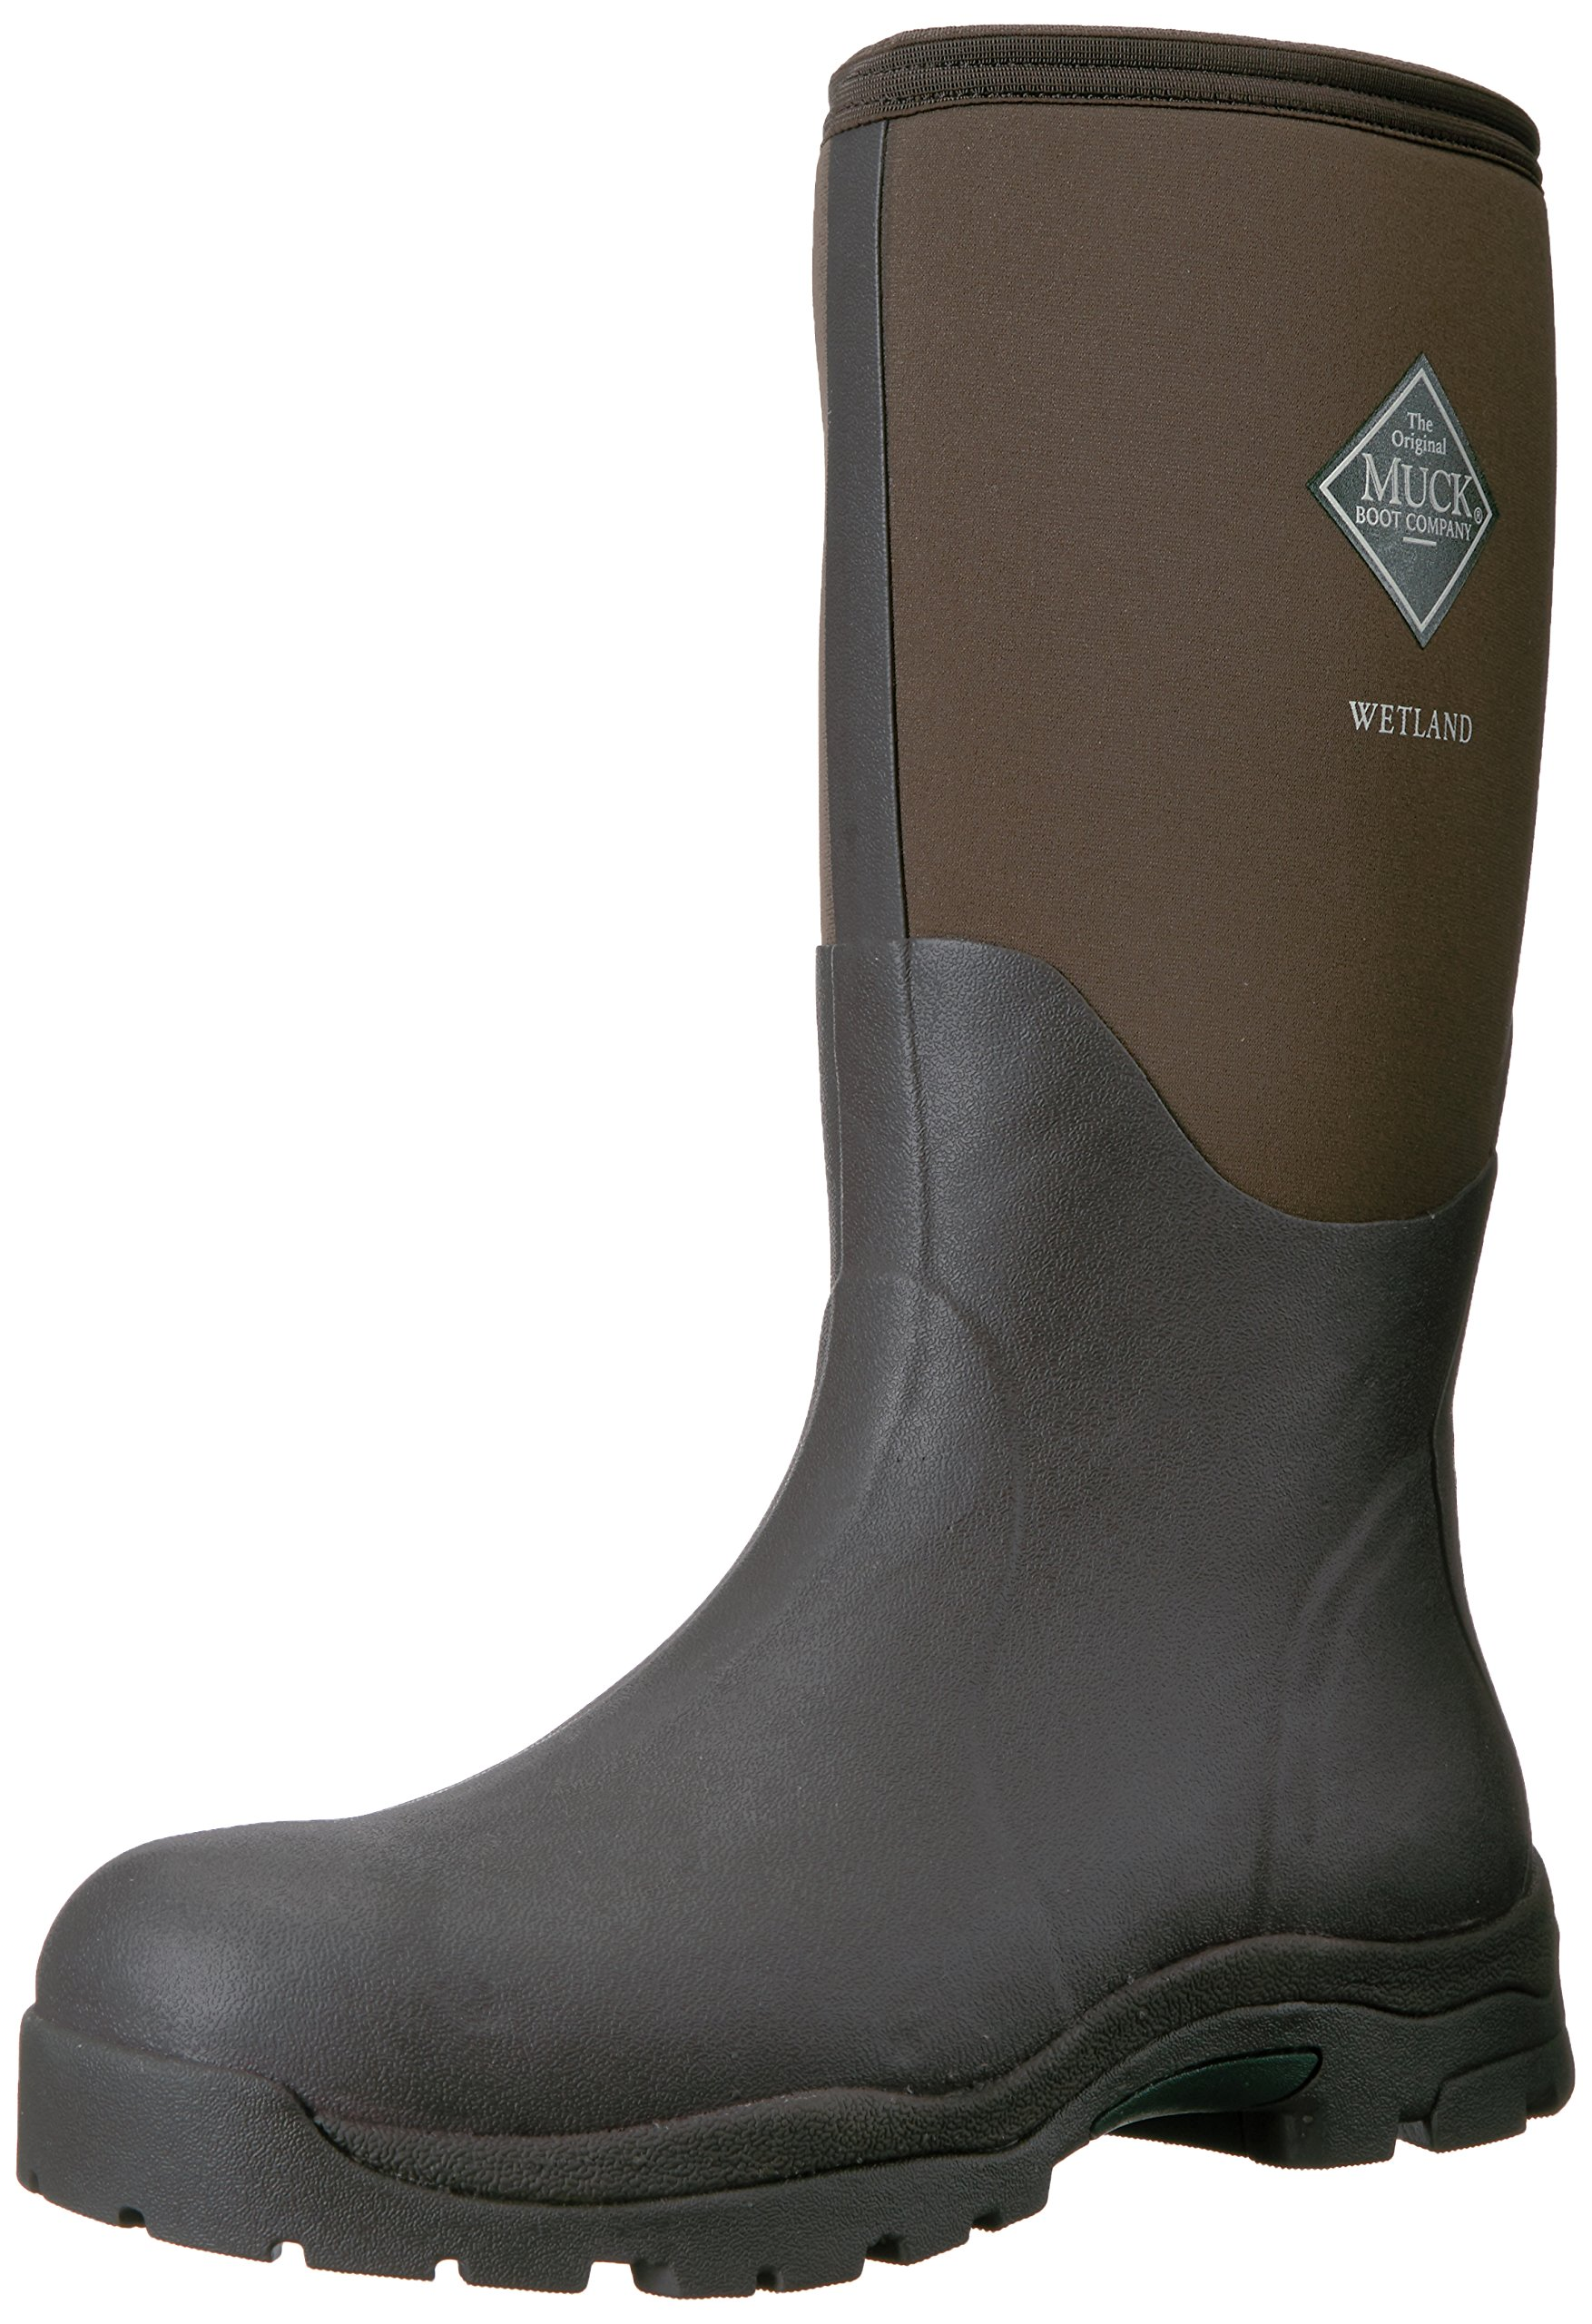 Muck Boots Wetland for women Size 11